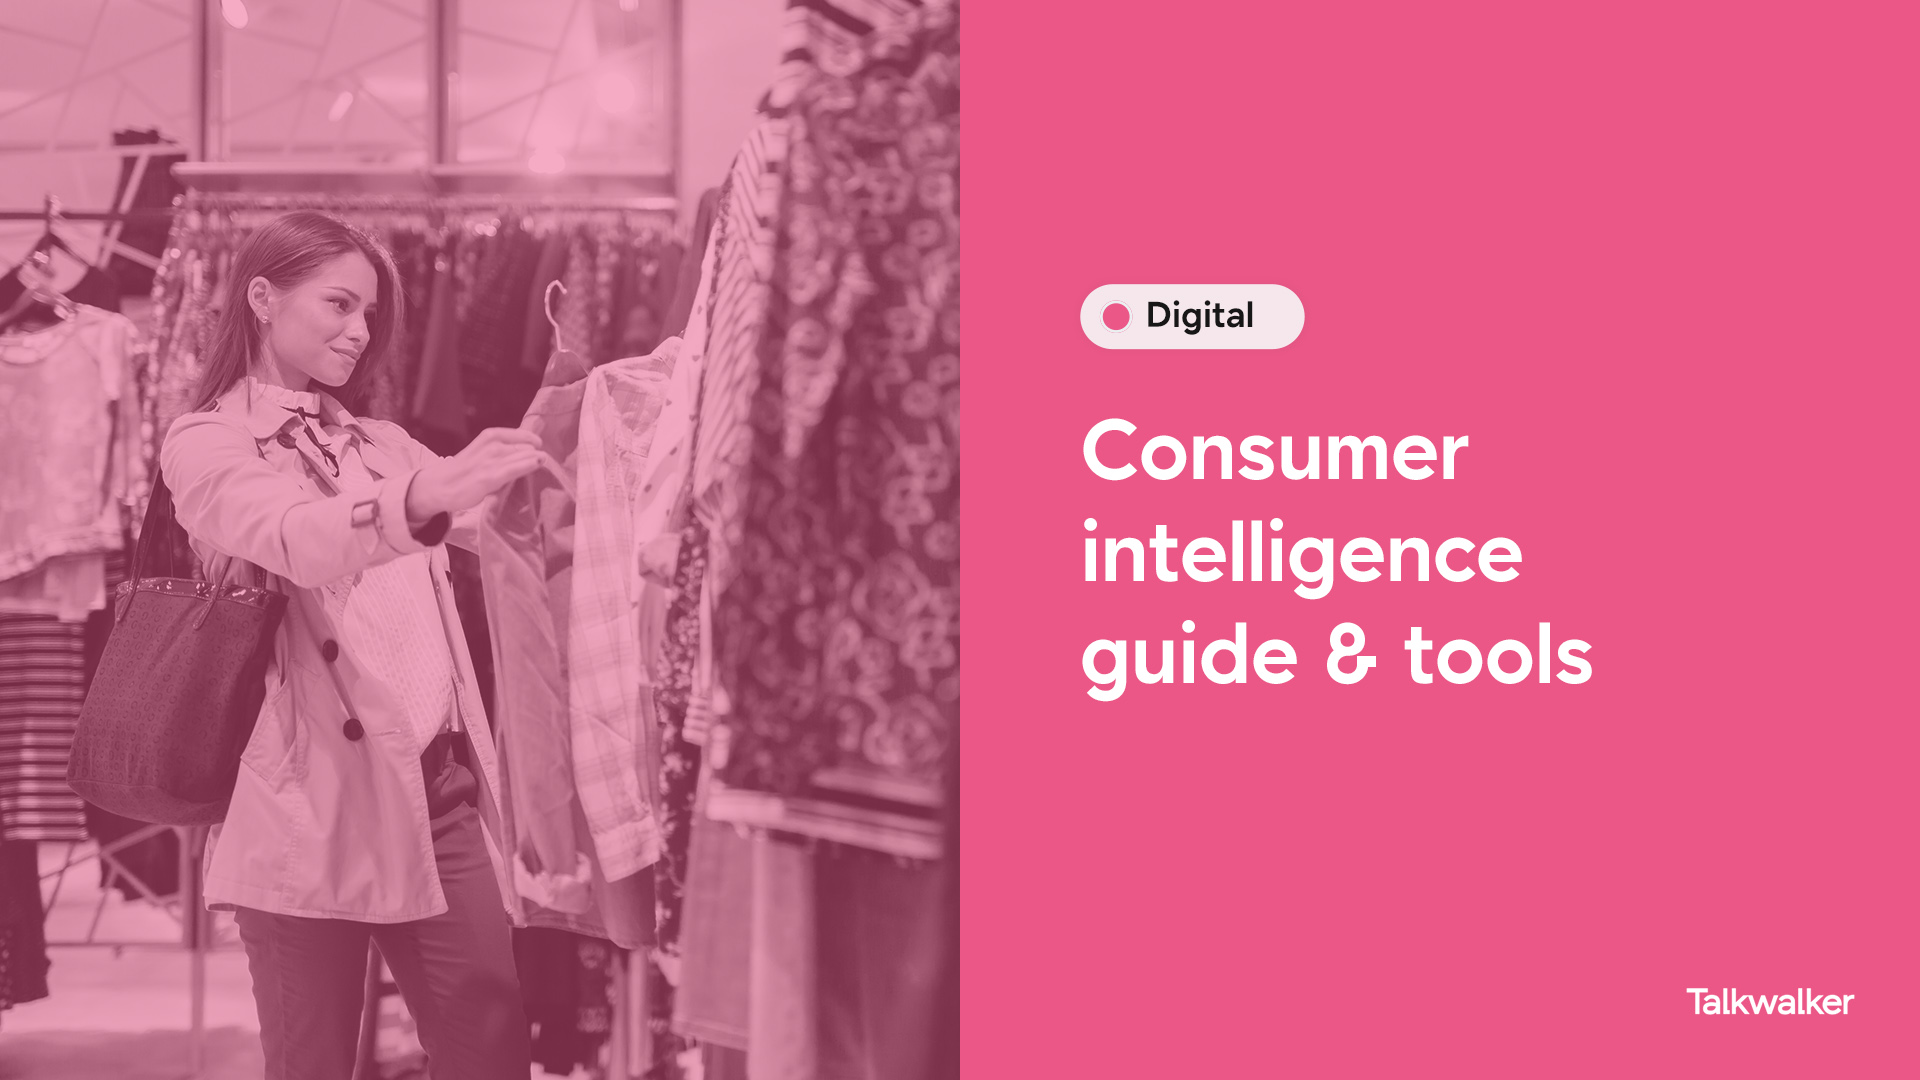 Consumer intelligence tools & guide